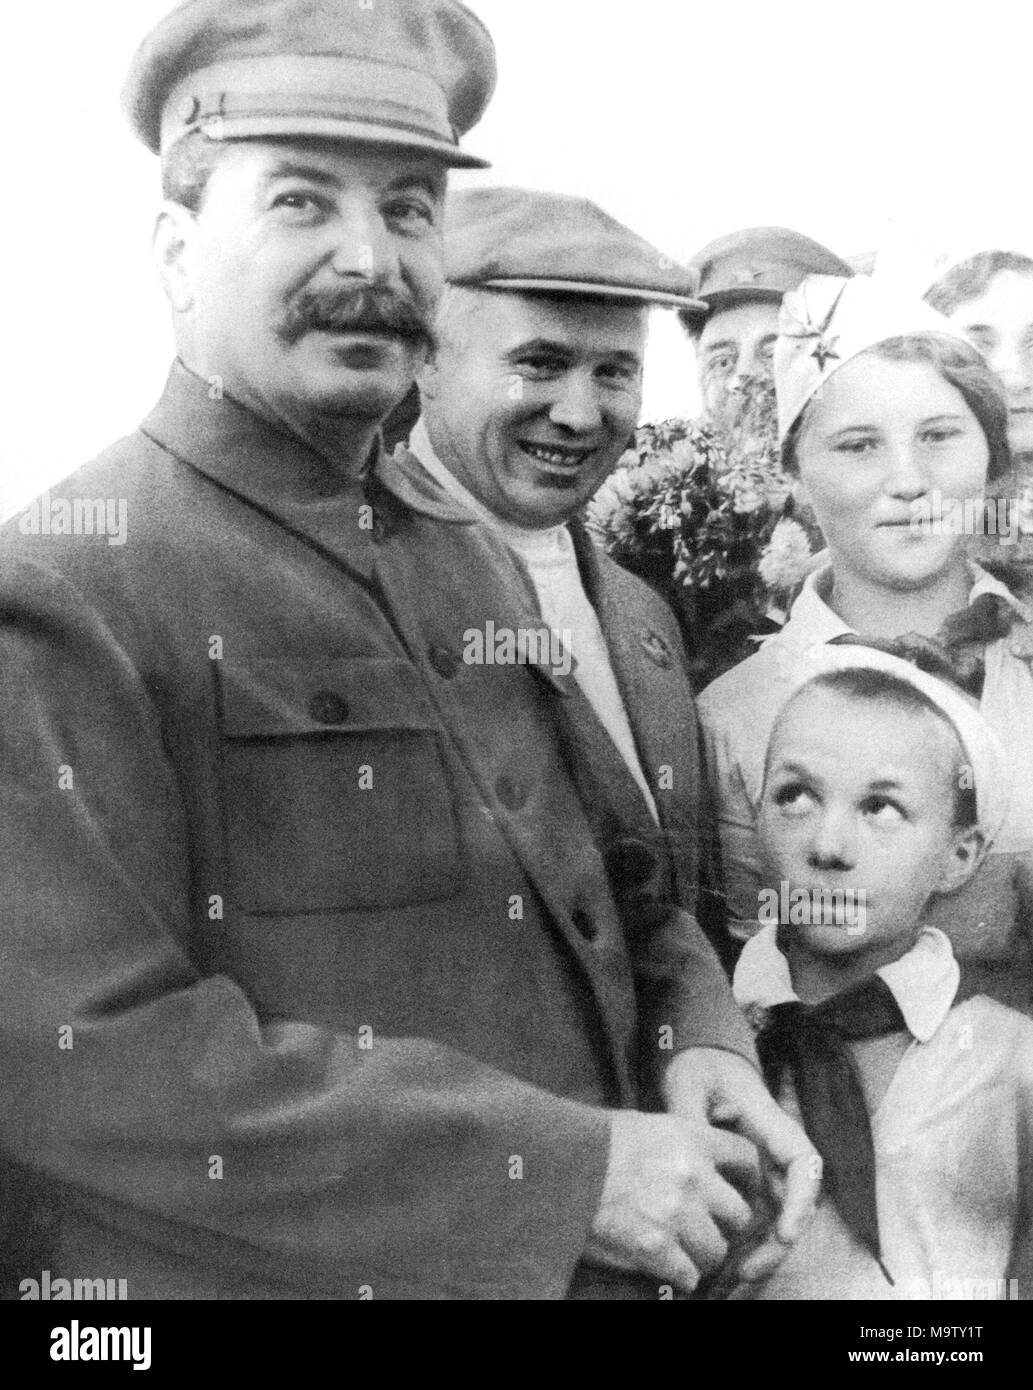 JOSEPH STALIN with Nikita Khruschev about 1935 - Stock Image